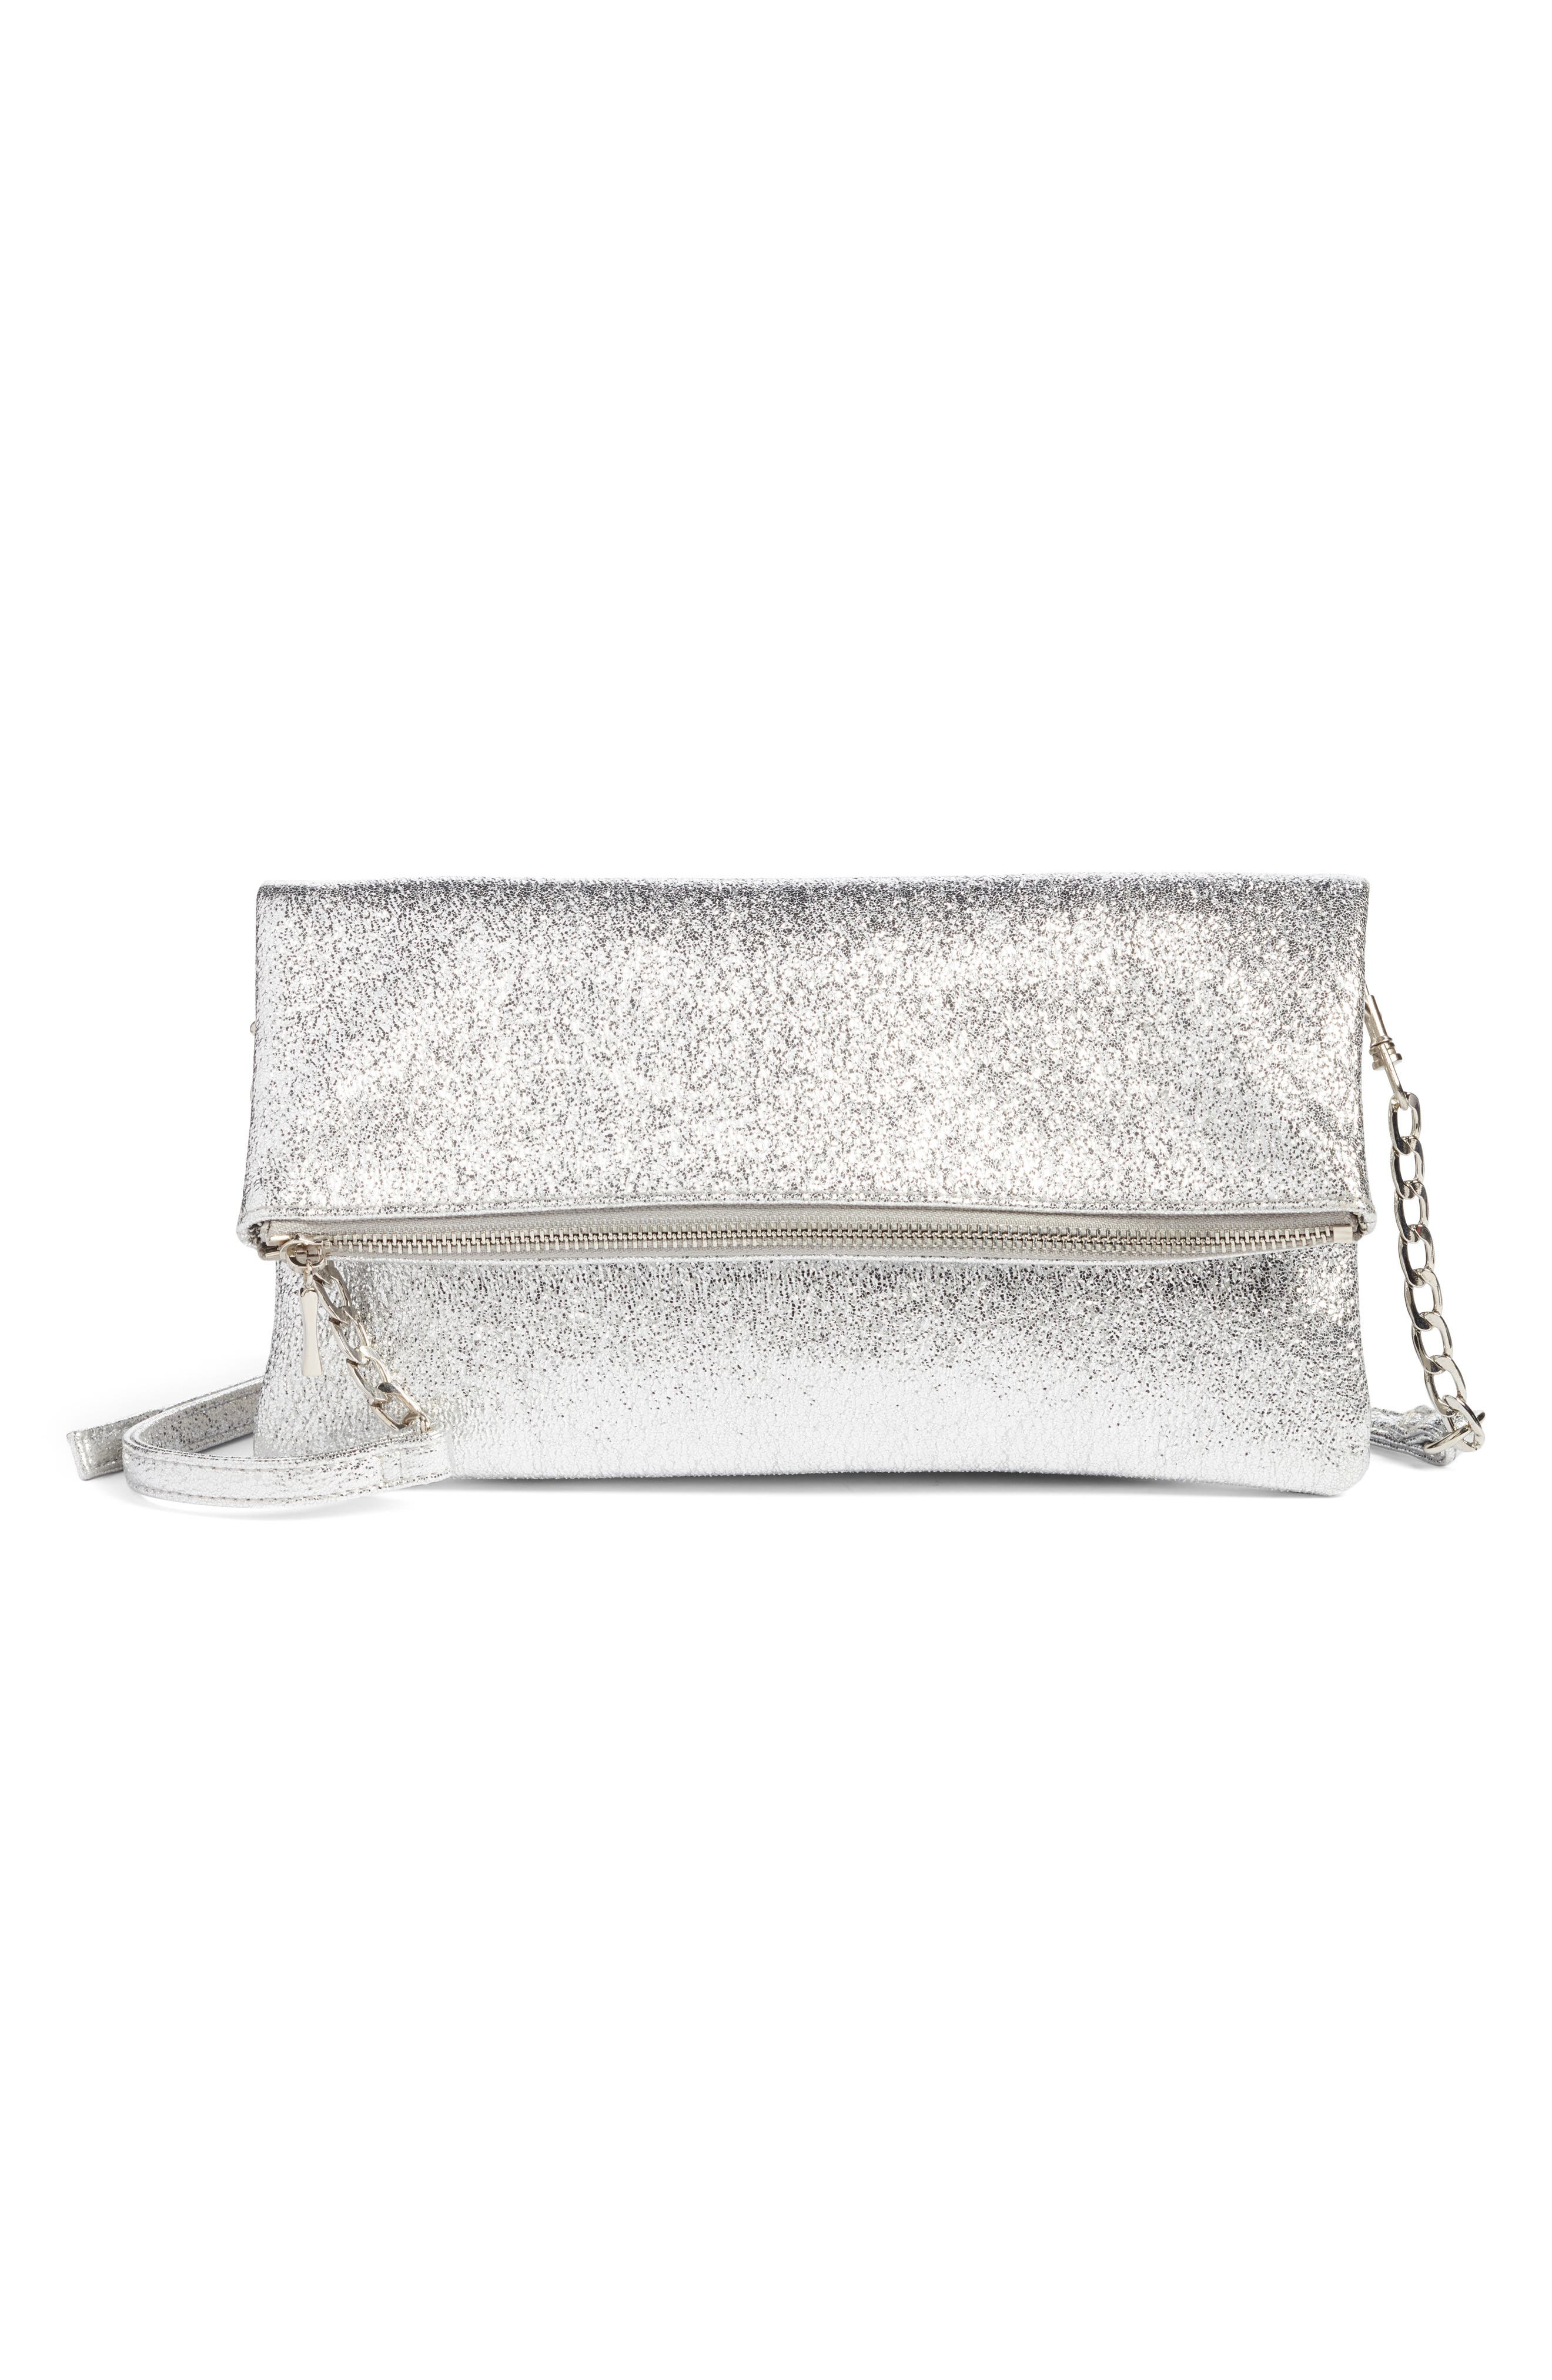 Maci Crinkle Faux Leather Foldover Clutch,                         Main,                         color, Silver